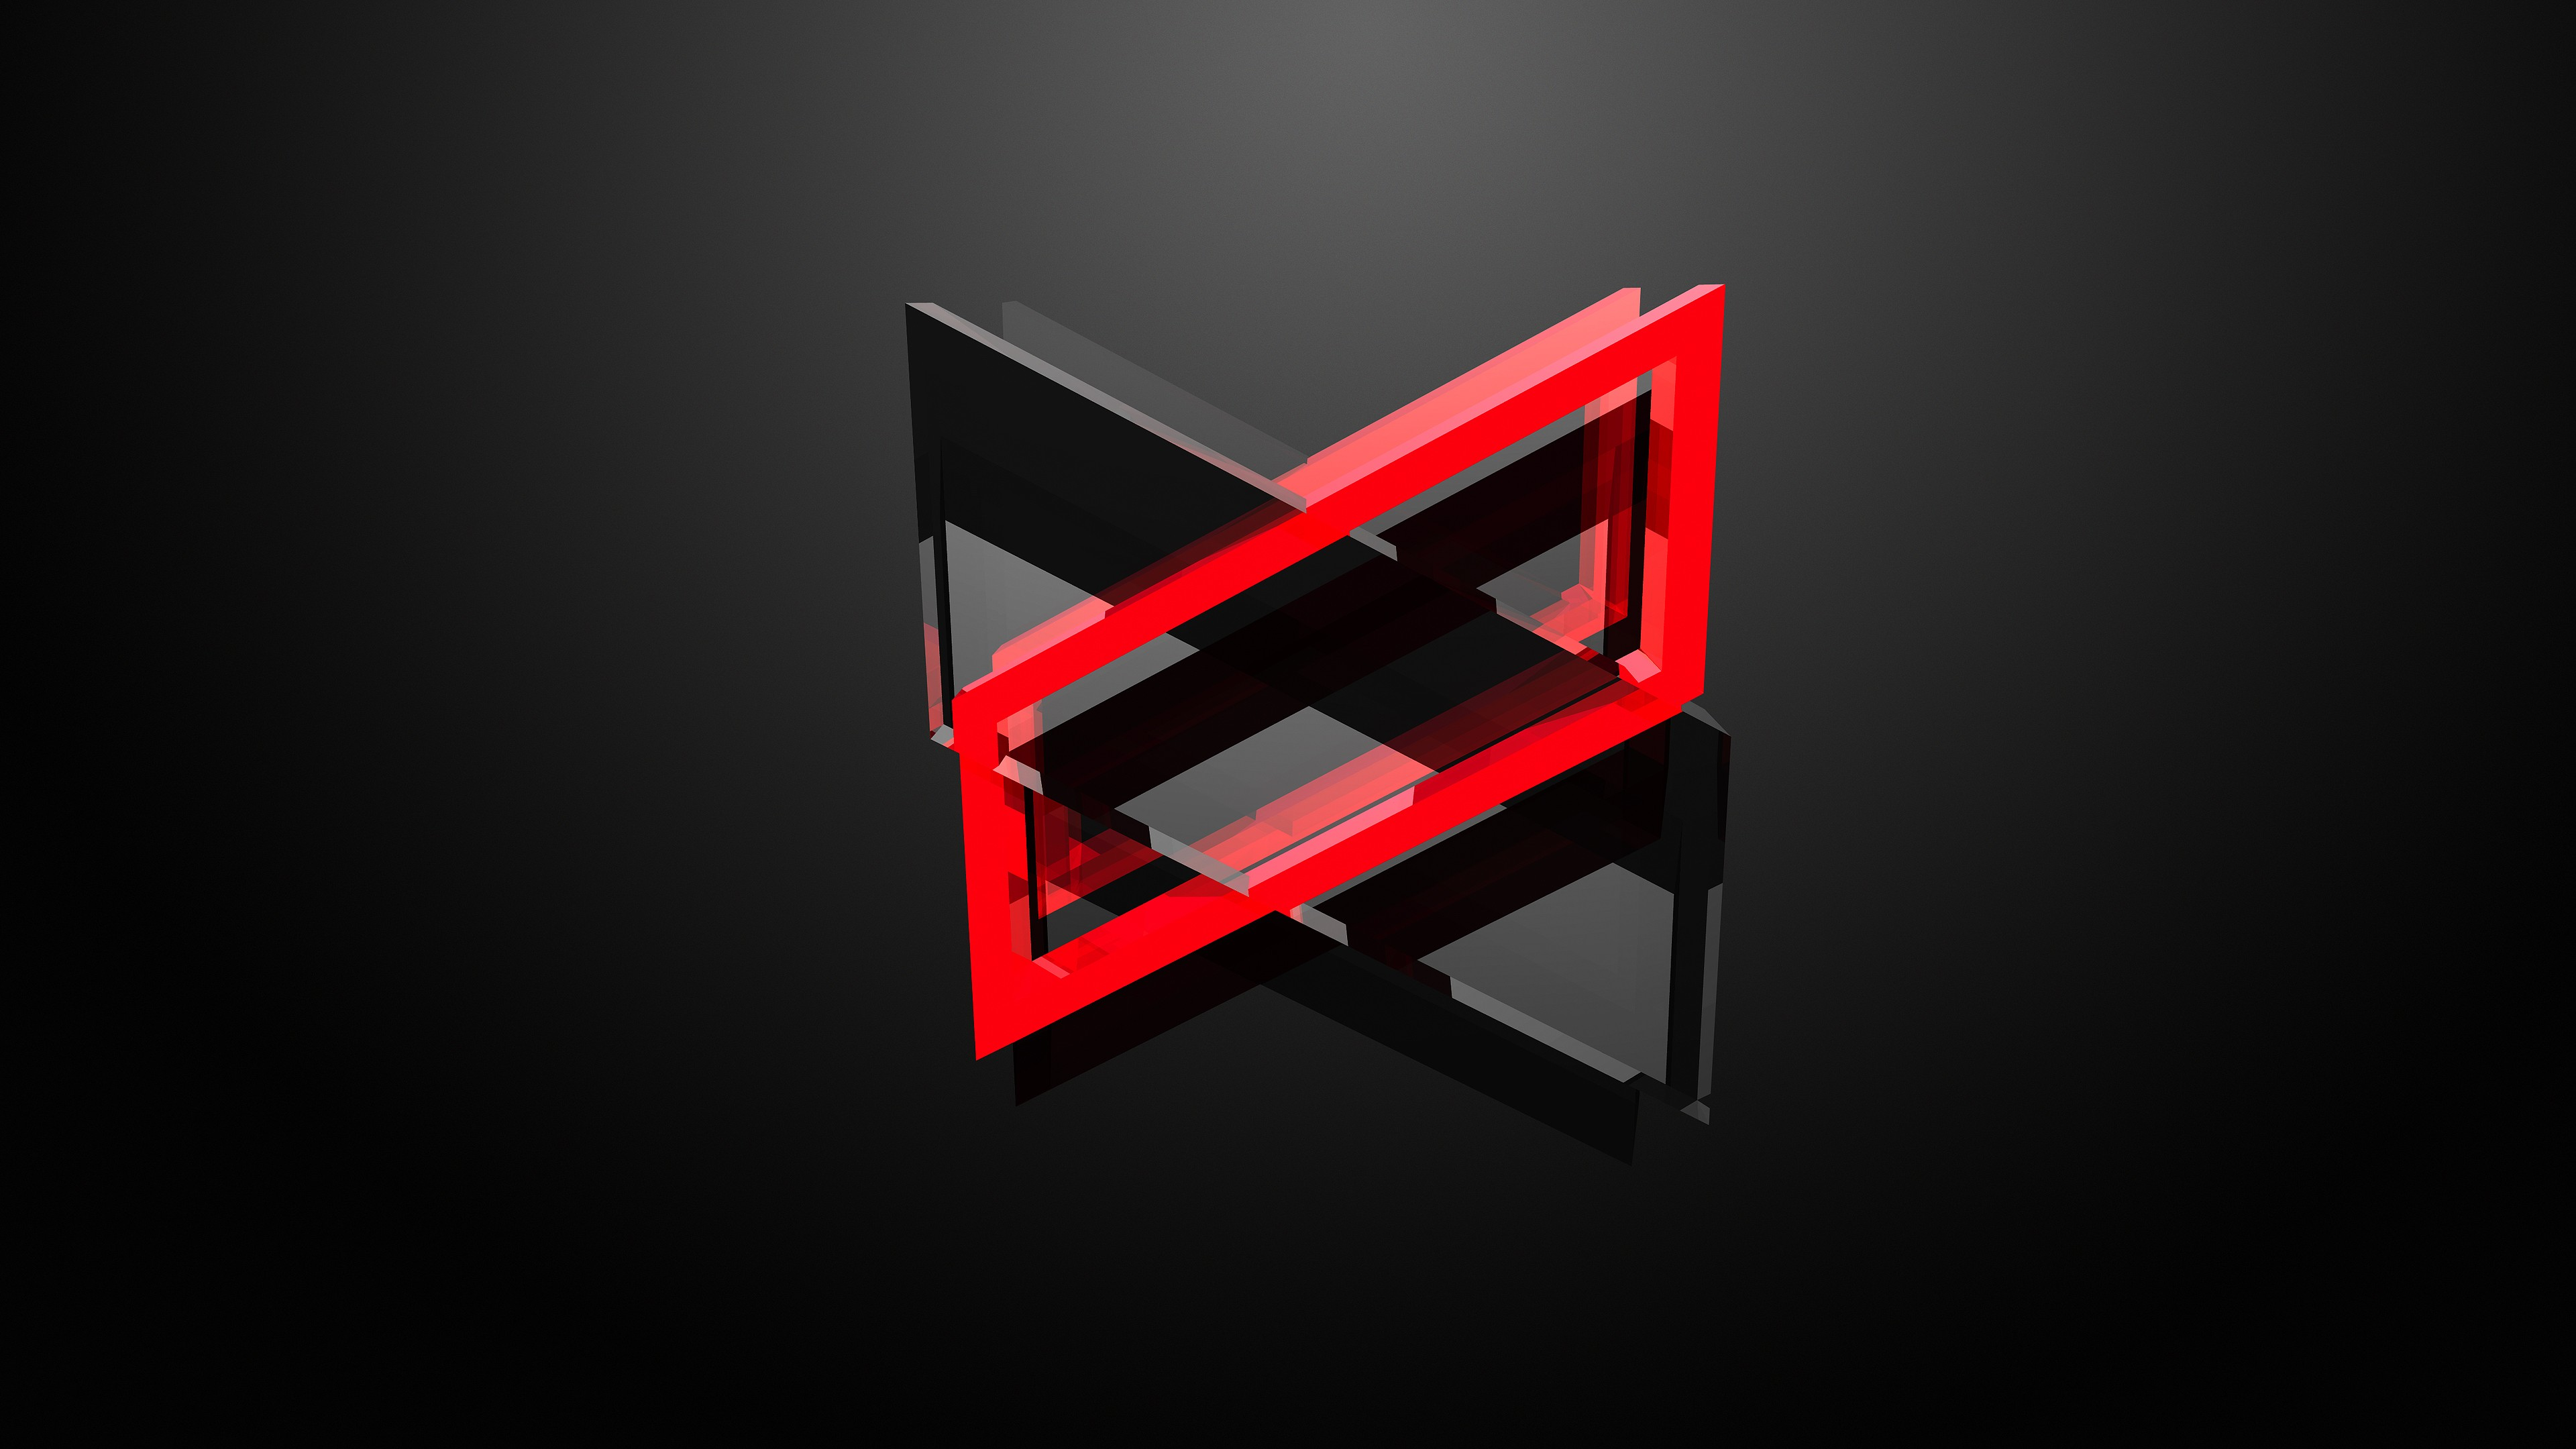 Mkbhd HD Logo 4k Wallpapers Images Backgrounds Photos And Pictures